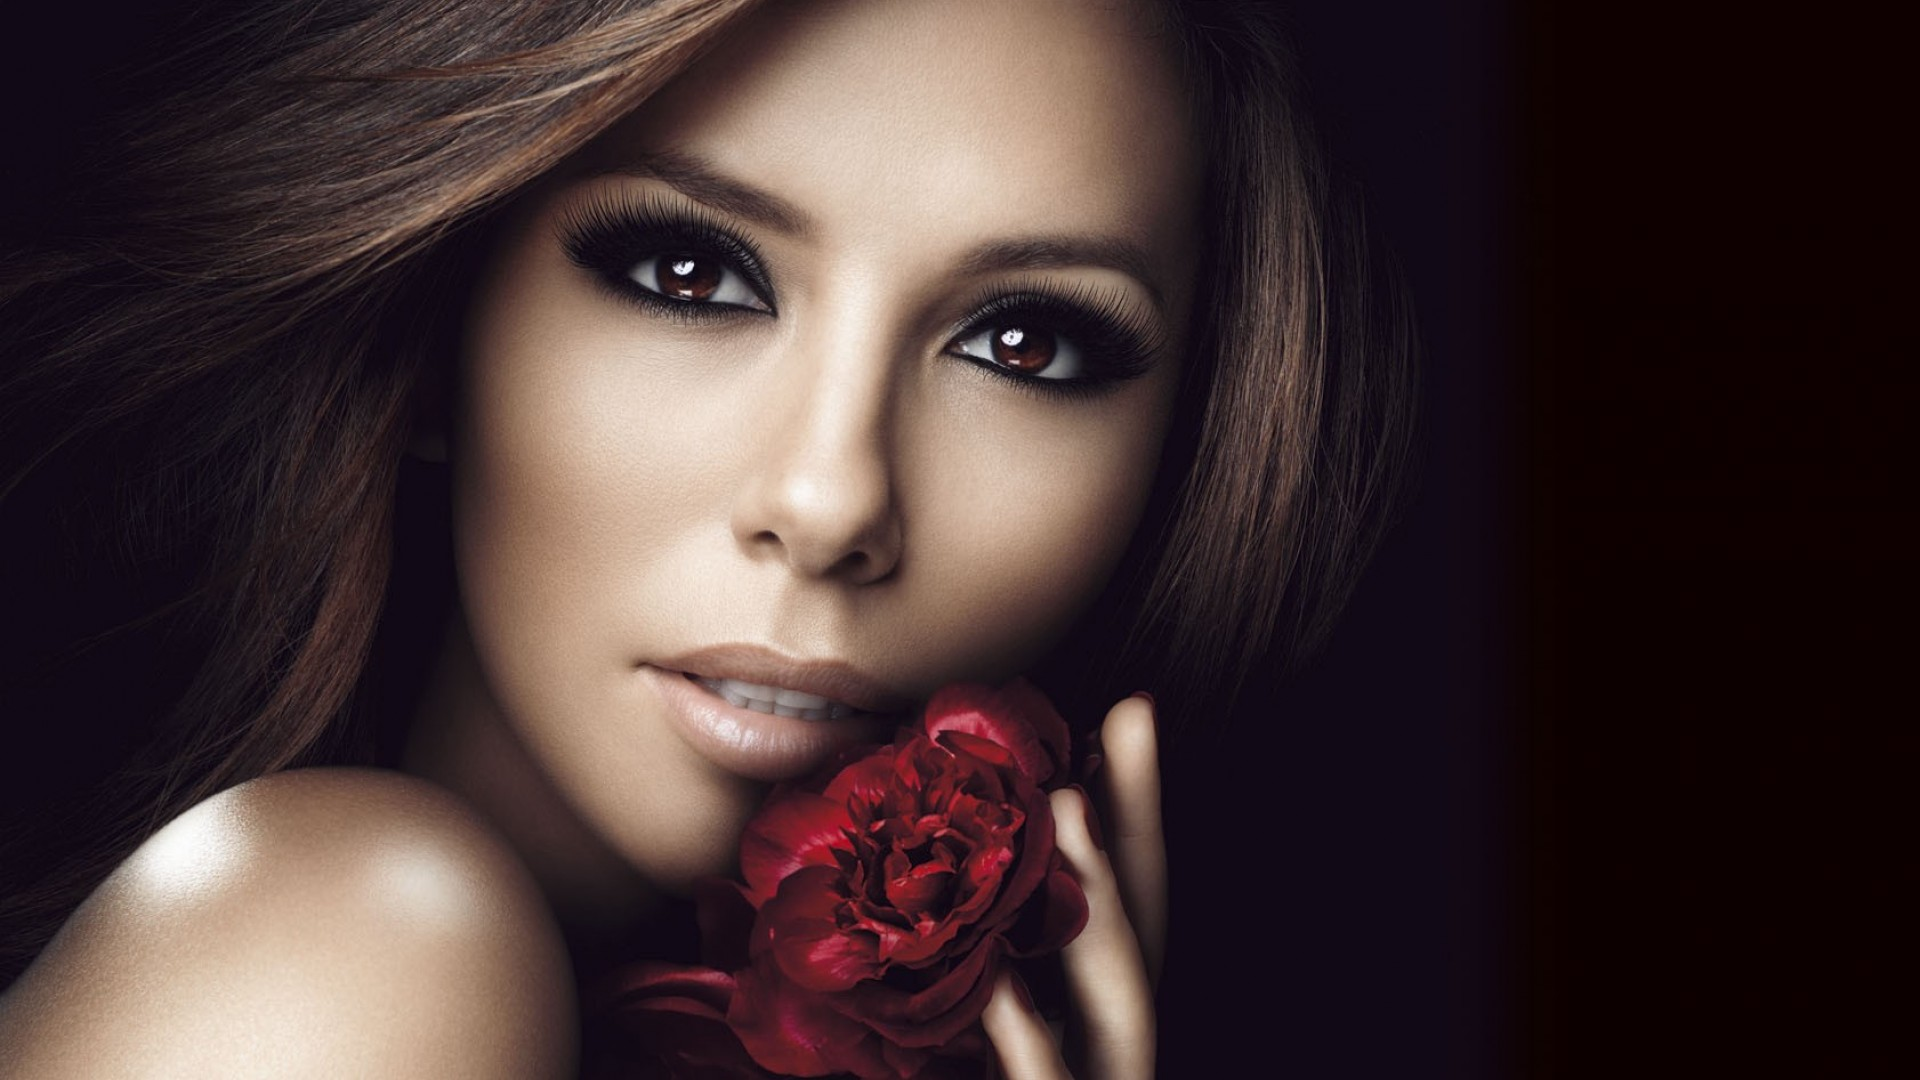 Eva longoria actress american actress wallpaper